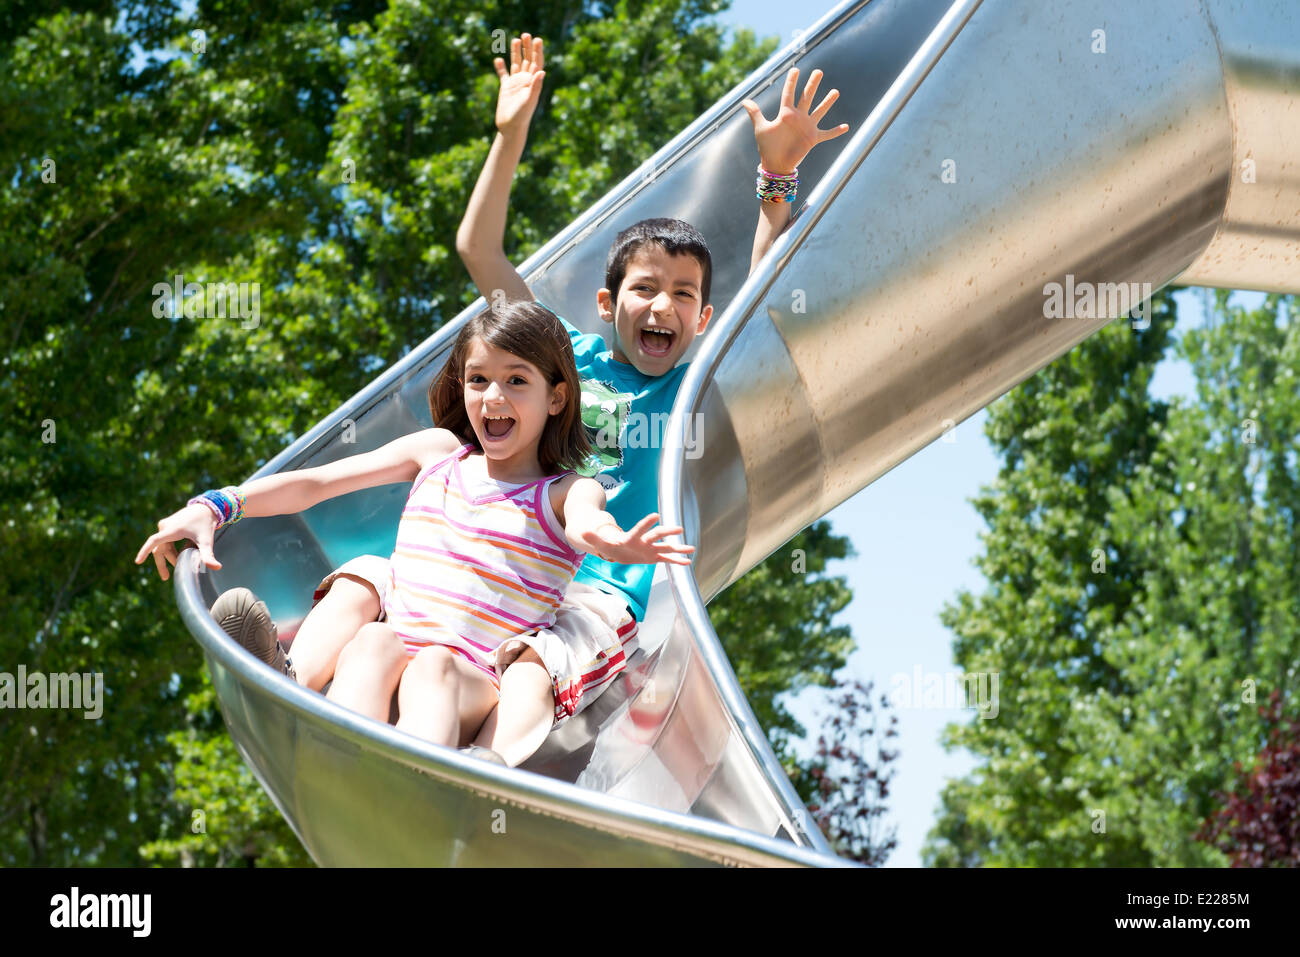 Young kids riding the slider in the park - Stock Image